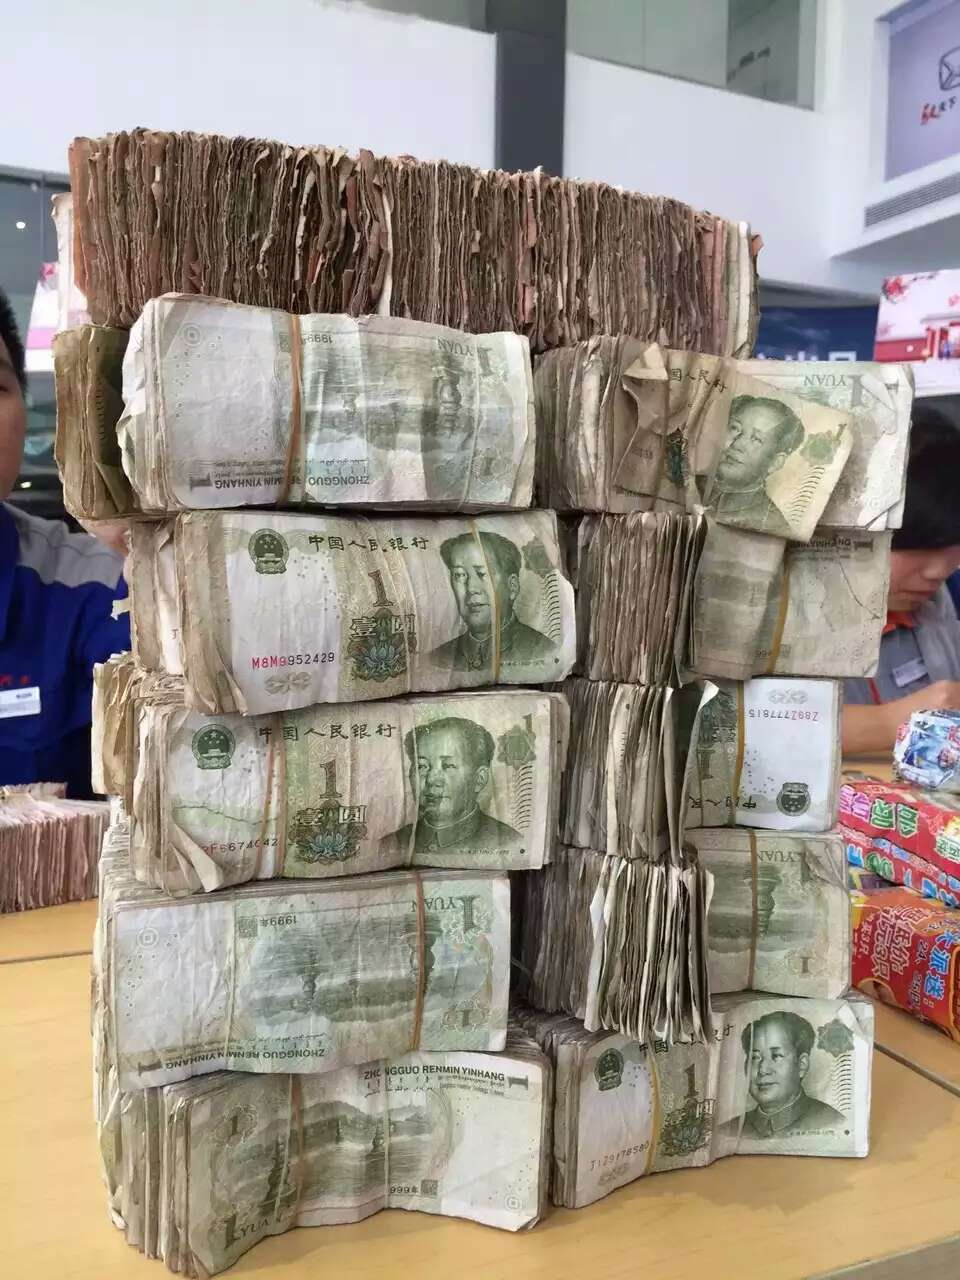 ZHANJIANG, CHINA - JANUARY 11: (CHINA OUT) RMB One yuan notes brought by a citizen who saves 100,000 yuan notes to buy a van are seen at a 4S store on January 11, 2016 in Zhanjiang, Guangdong Province of China. The citizen drove a small truck to carry these notes whose denominations are mostly RMB five Jiao, RMB two Jiao, RMB one Jiao and a small fraction of RMB one Yuan. It's said that the van the citizen wants to purchase costs more than ninety thousand and he paid for it in one lump sum. (Photo by ChinaFotoPress/ChinaFotoPress via Getty Images)